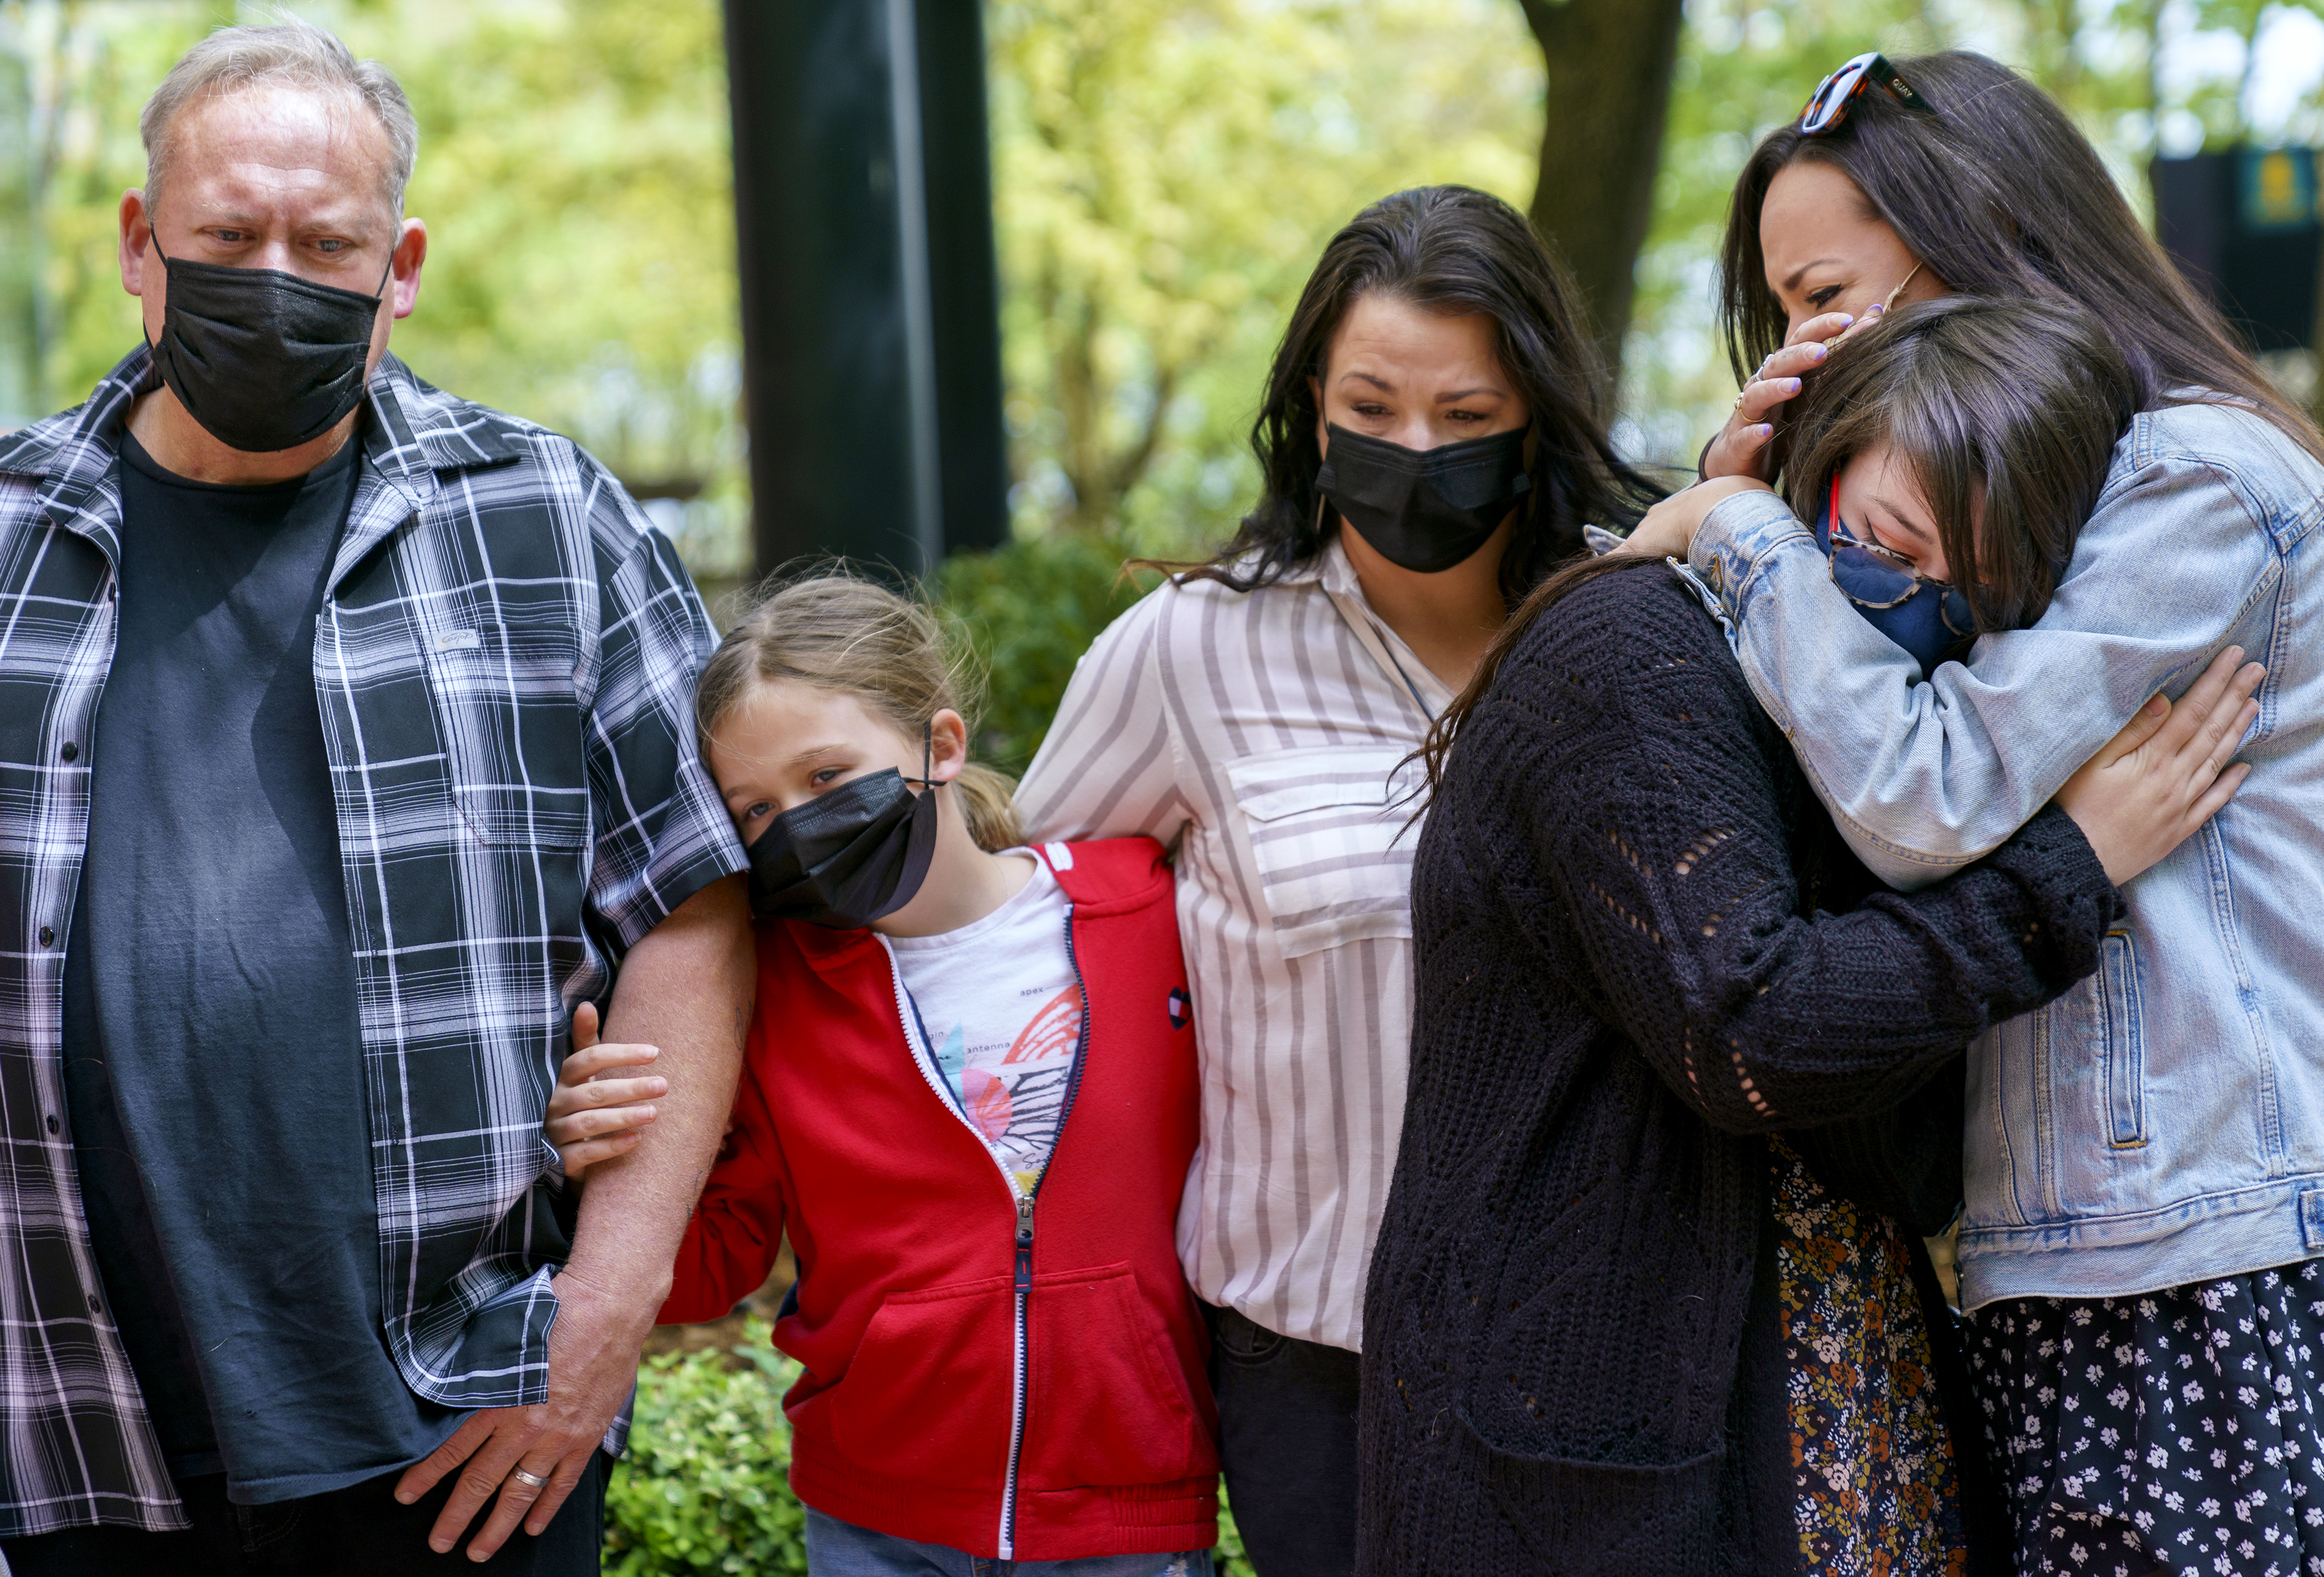 (Left to right) Family members of Robert Delgado, his brother Kirkpatrick Fries, niece Savannah Dennis, 10, sister Paulette Martin, and daughters Kennedy Garrett, 24, and Madison Scott, 30, during a press conference on Friday, April 23, 2021. Delgado was killed by Portland Police in Lents Park earlier in the month.